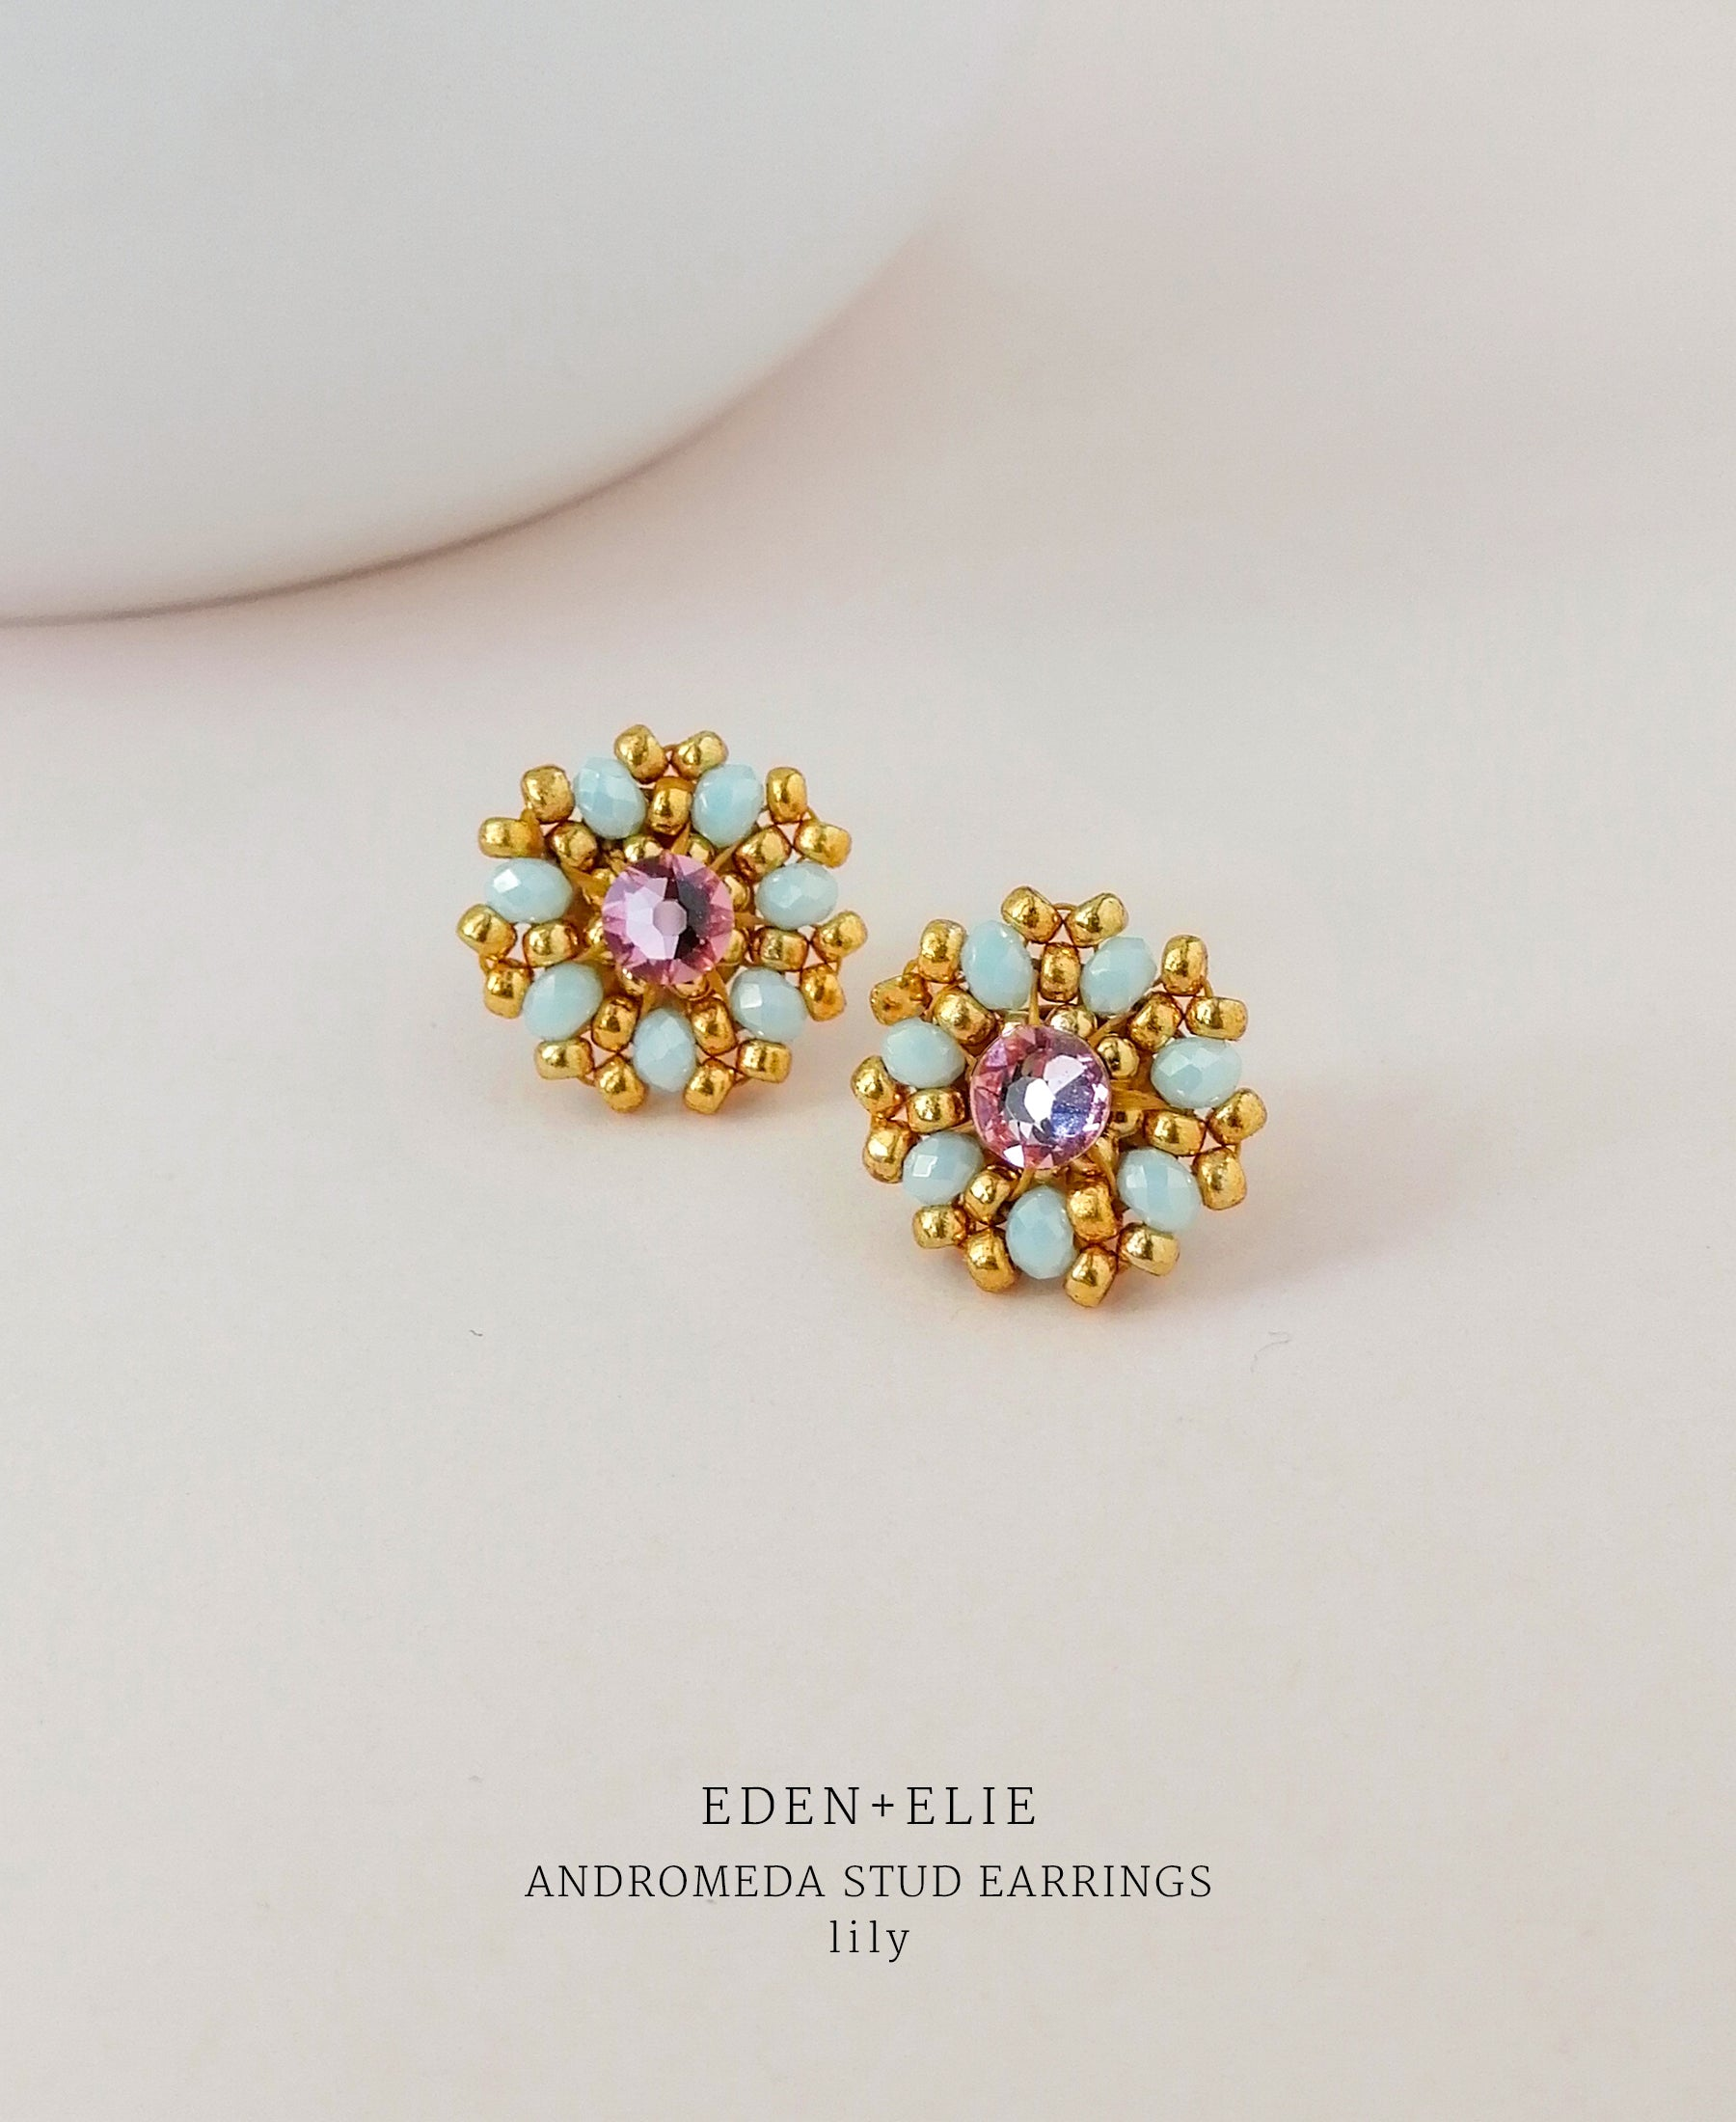 EDEN + ELIE Andromeda stud earrings - lily